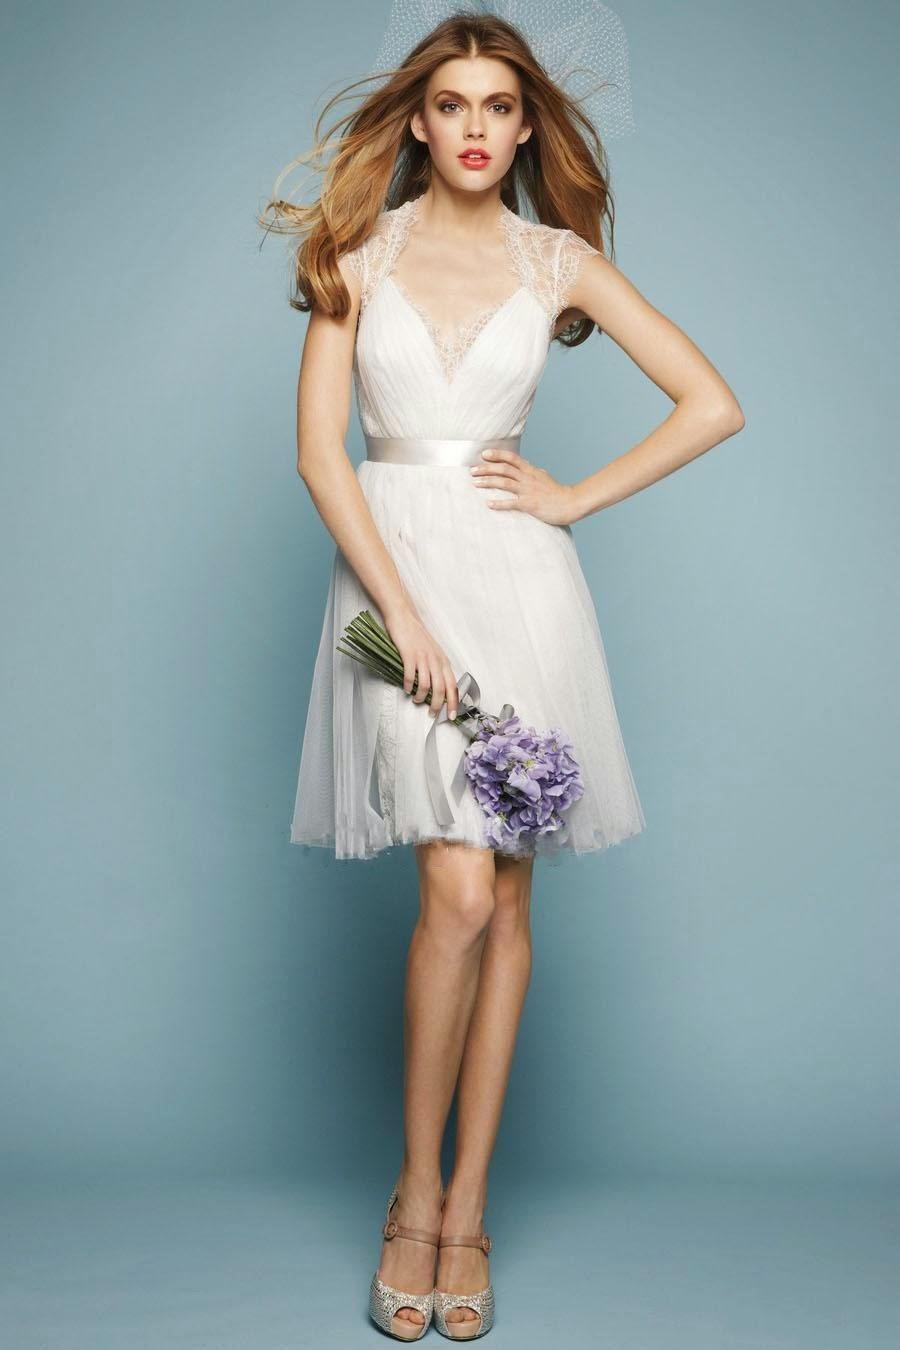 Elegant Affairs: Fancy a short wedding dress?